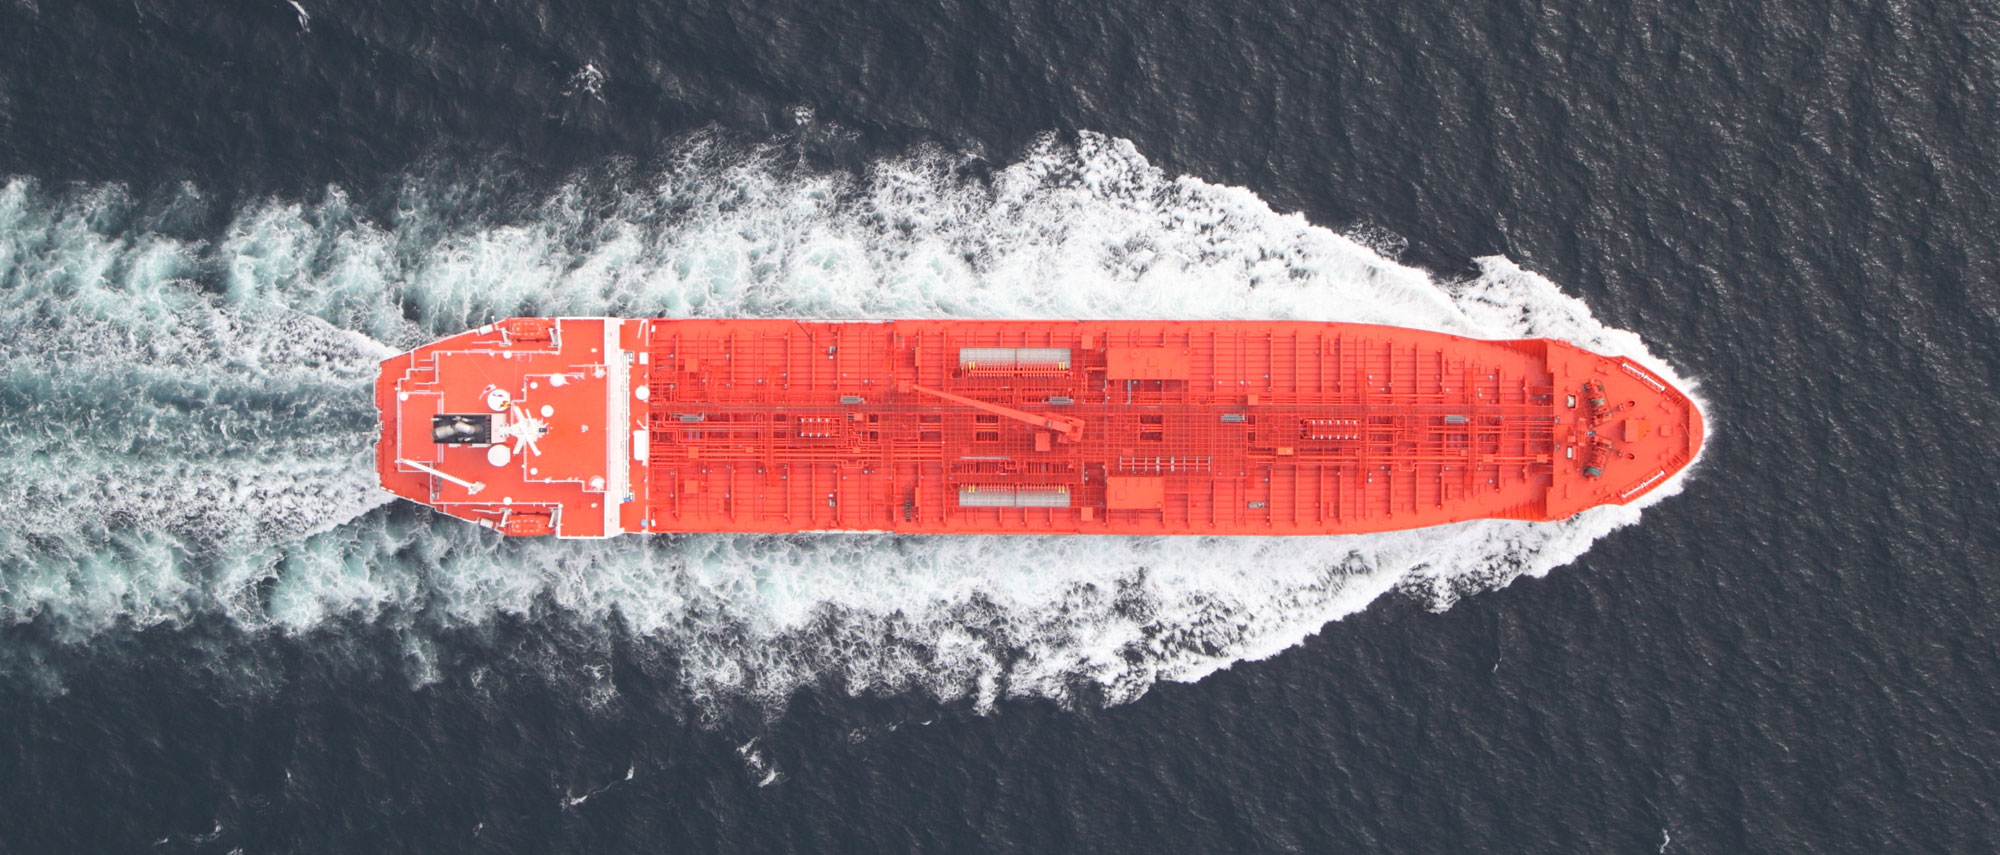 Ariel view of Cayman flagged merchant vessel